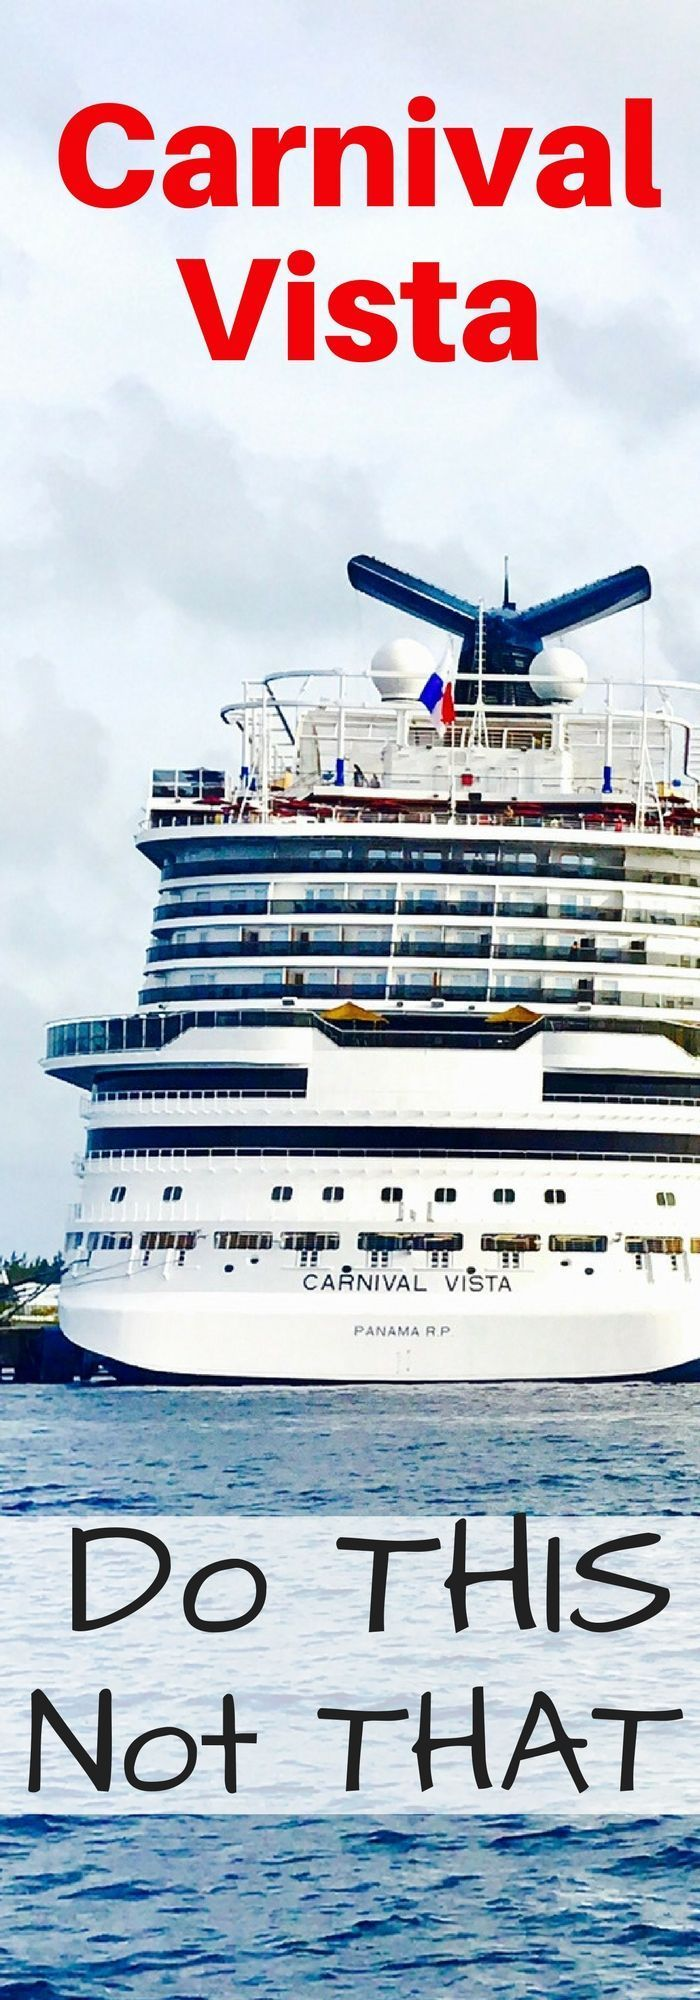 Best Carnival Dream Images On Pinterest Carnival Breeze - How much do cruise ships make